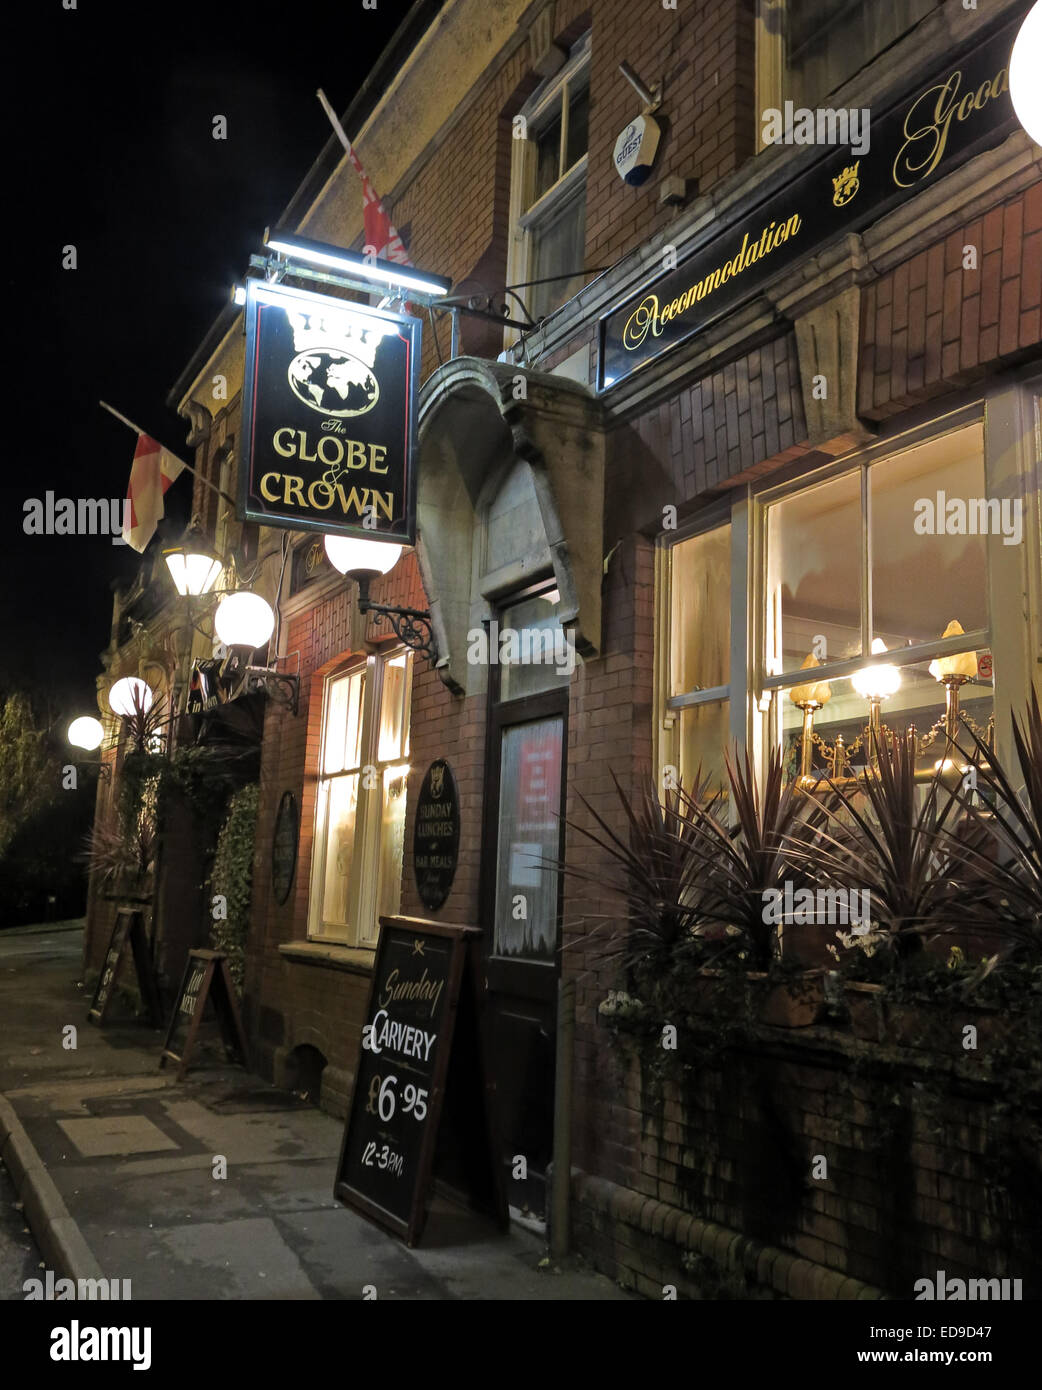 The Globe and Crown Pub Yeovil town, Somerset, England UK Formally Globetrotters - Stock Image